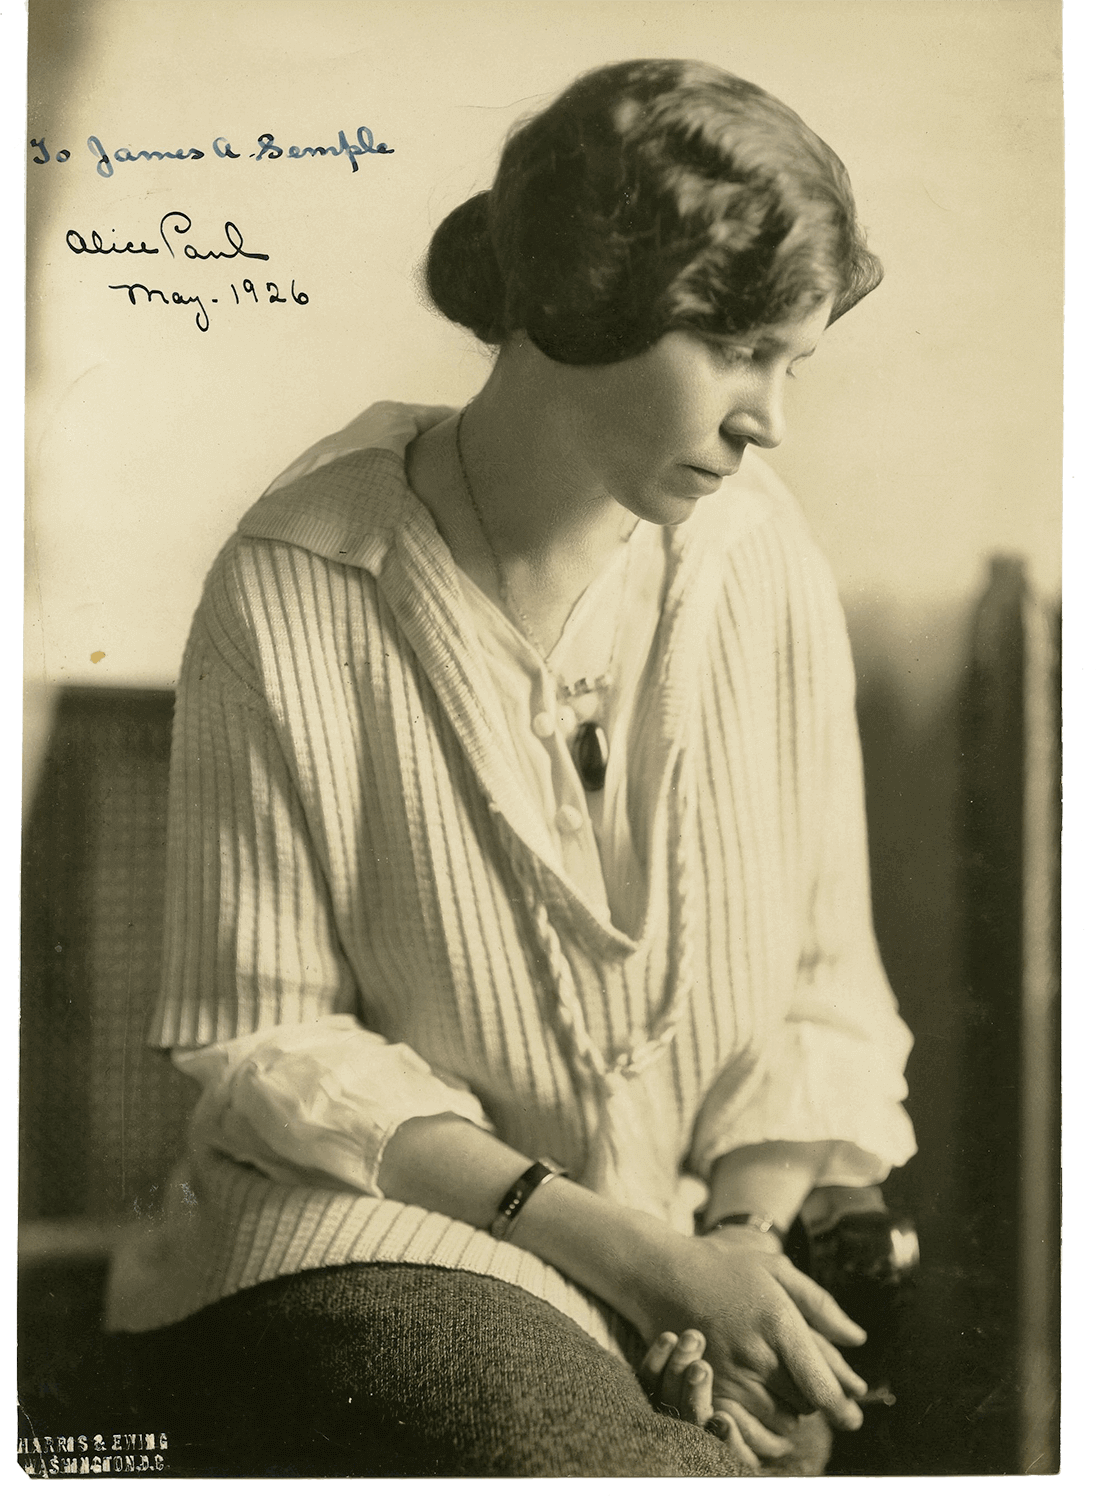 Alice Stokes Paul (1885-1977), Suffragist (Photo: Harris & Ewing Inc., Washington D.C.)